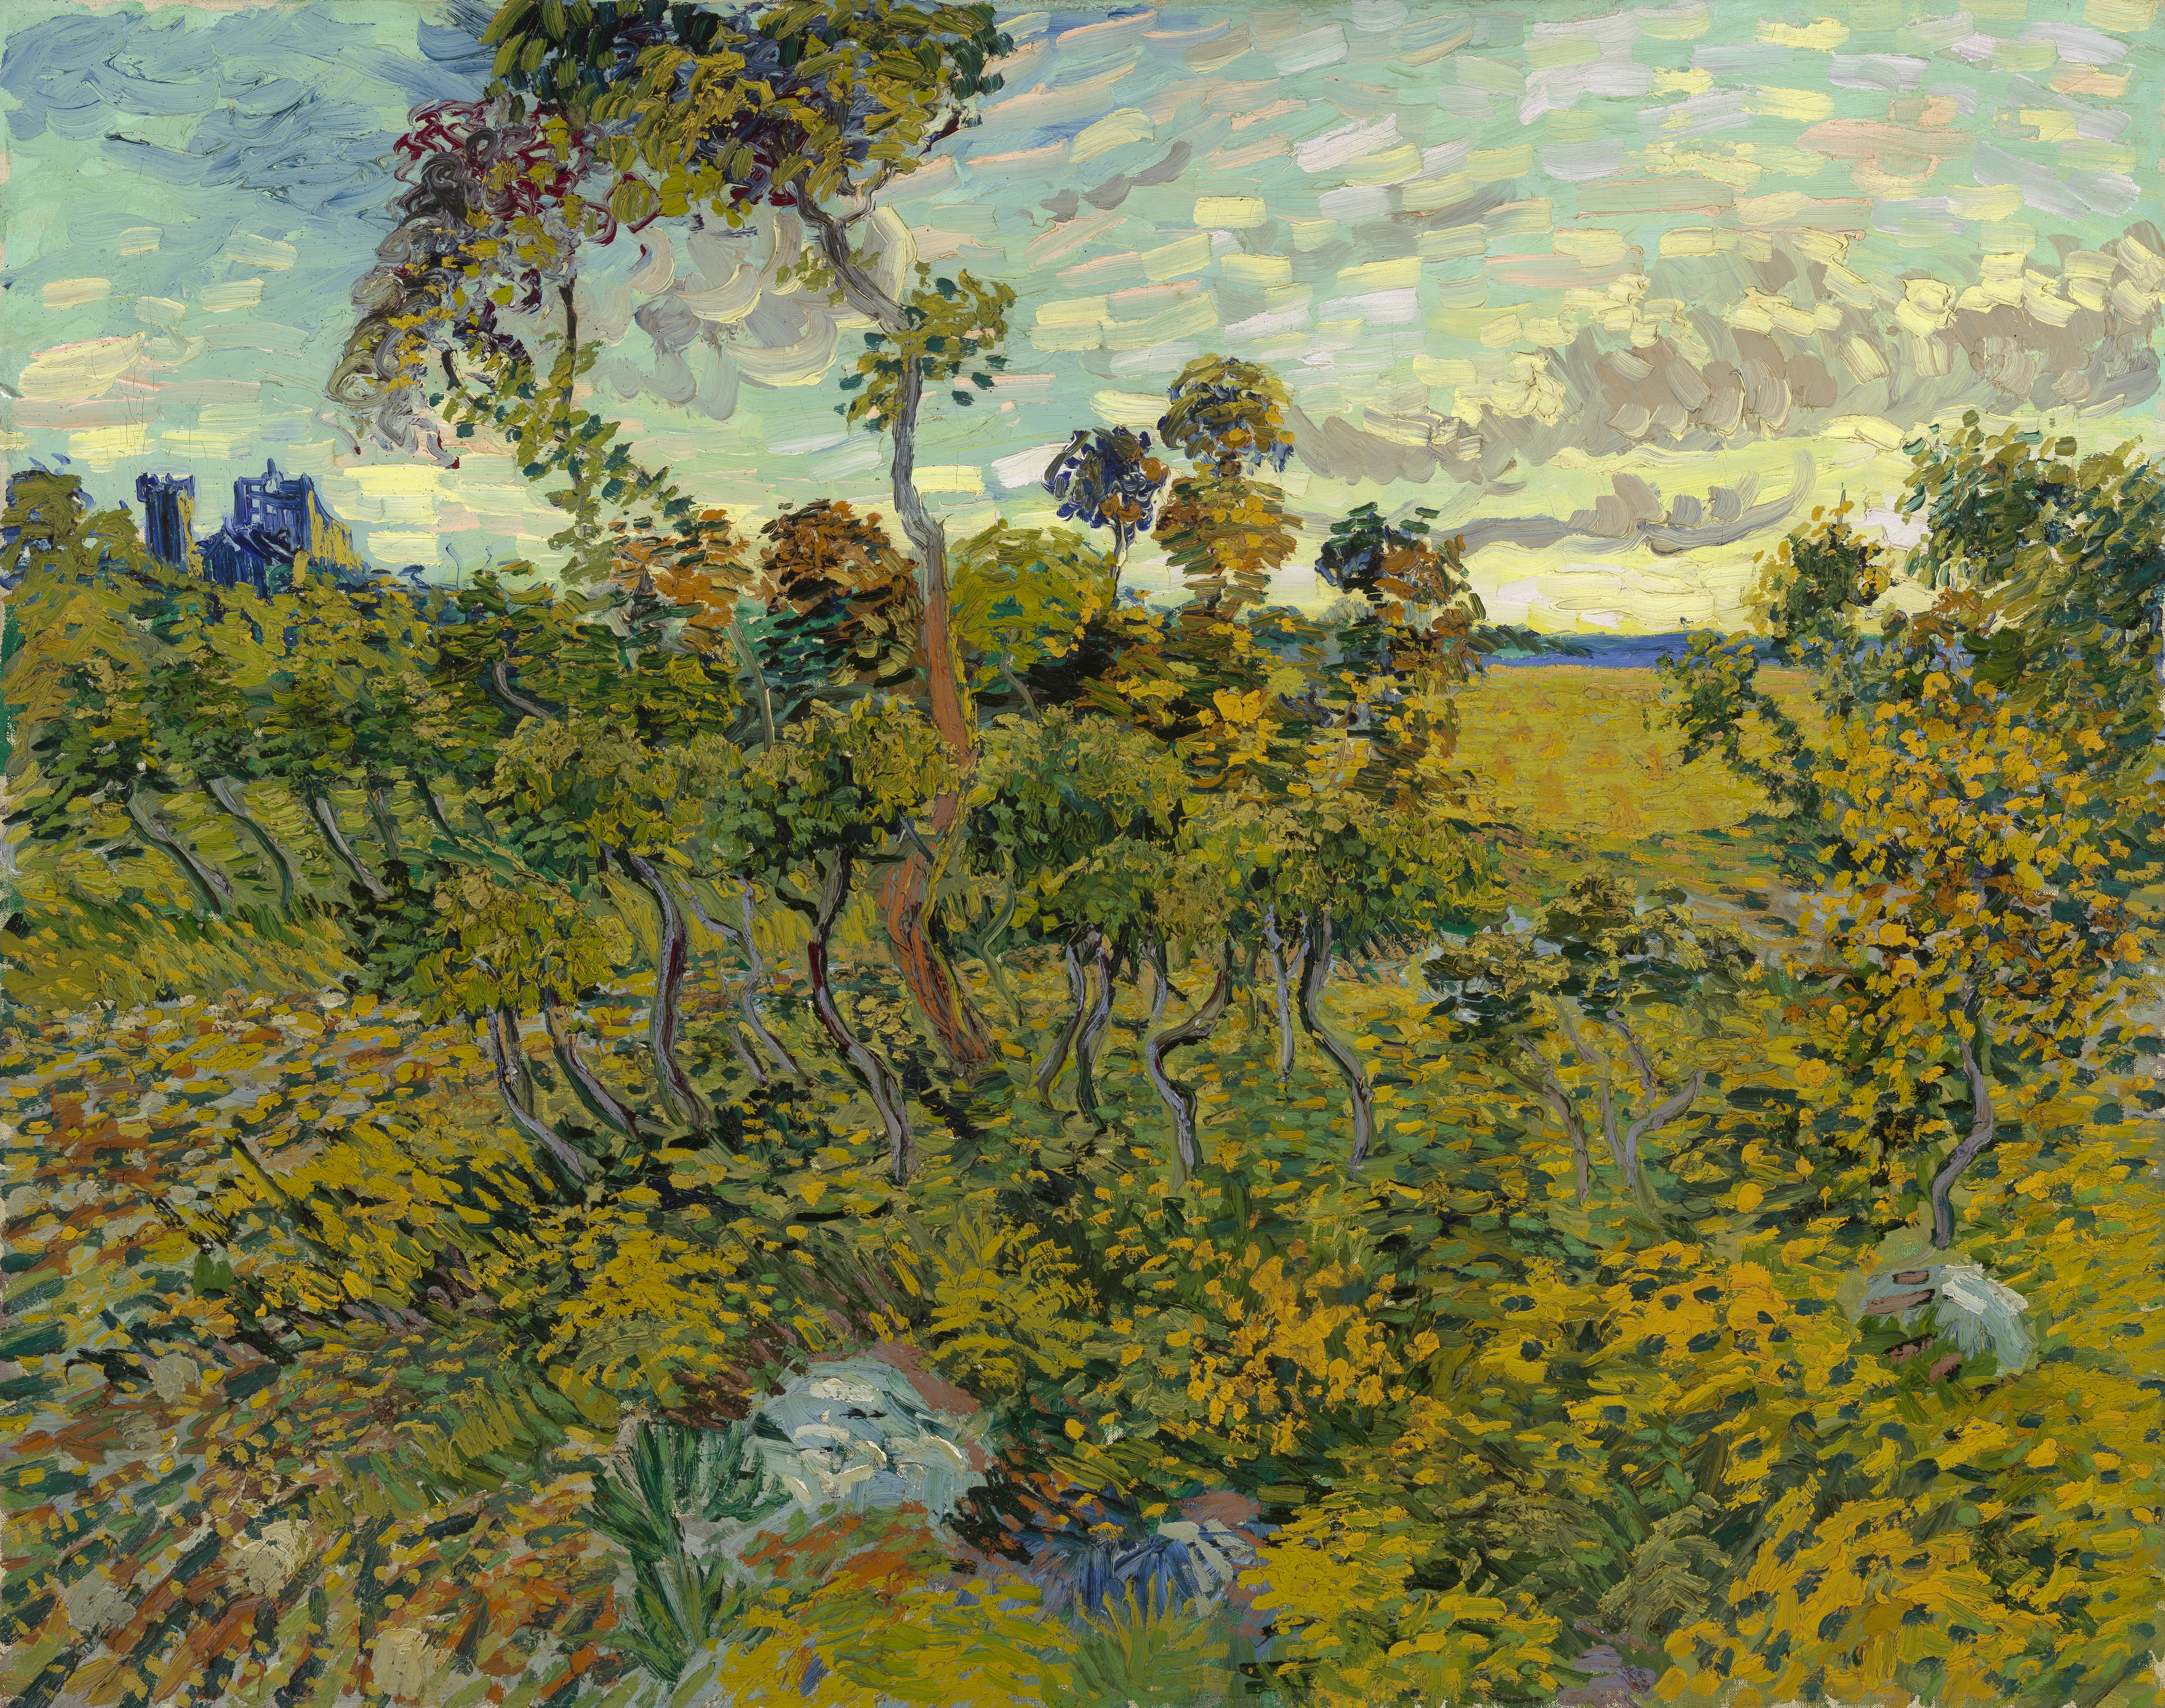 The History Blog » Blog Archive » New Van Gogh Painting